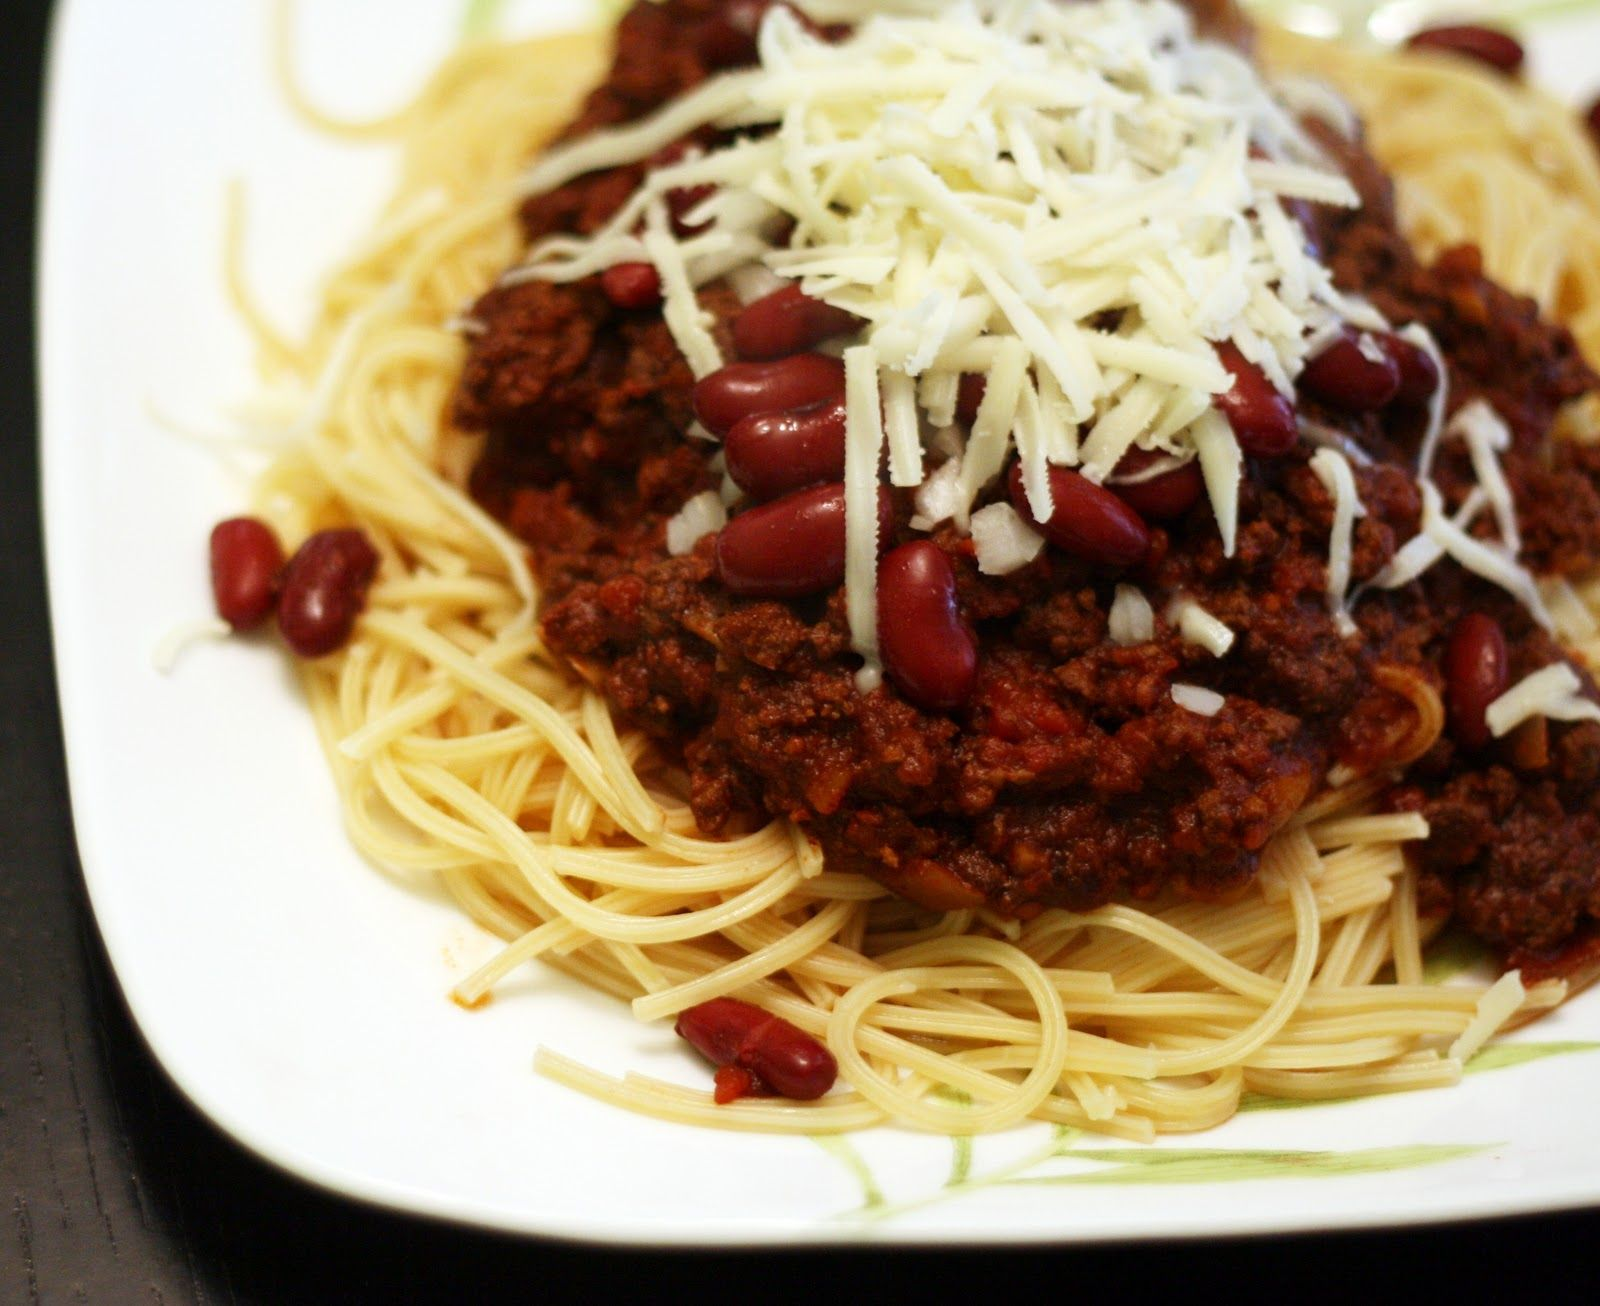 Coconut & Lime | Slow Cooker Cincinnati Chili ~ I don't have a slow cooker so I do this all on the stove. Pretty good cincinnati chili attempt, nice spice level for when I crave that chili and spaghetti and I can't get out here